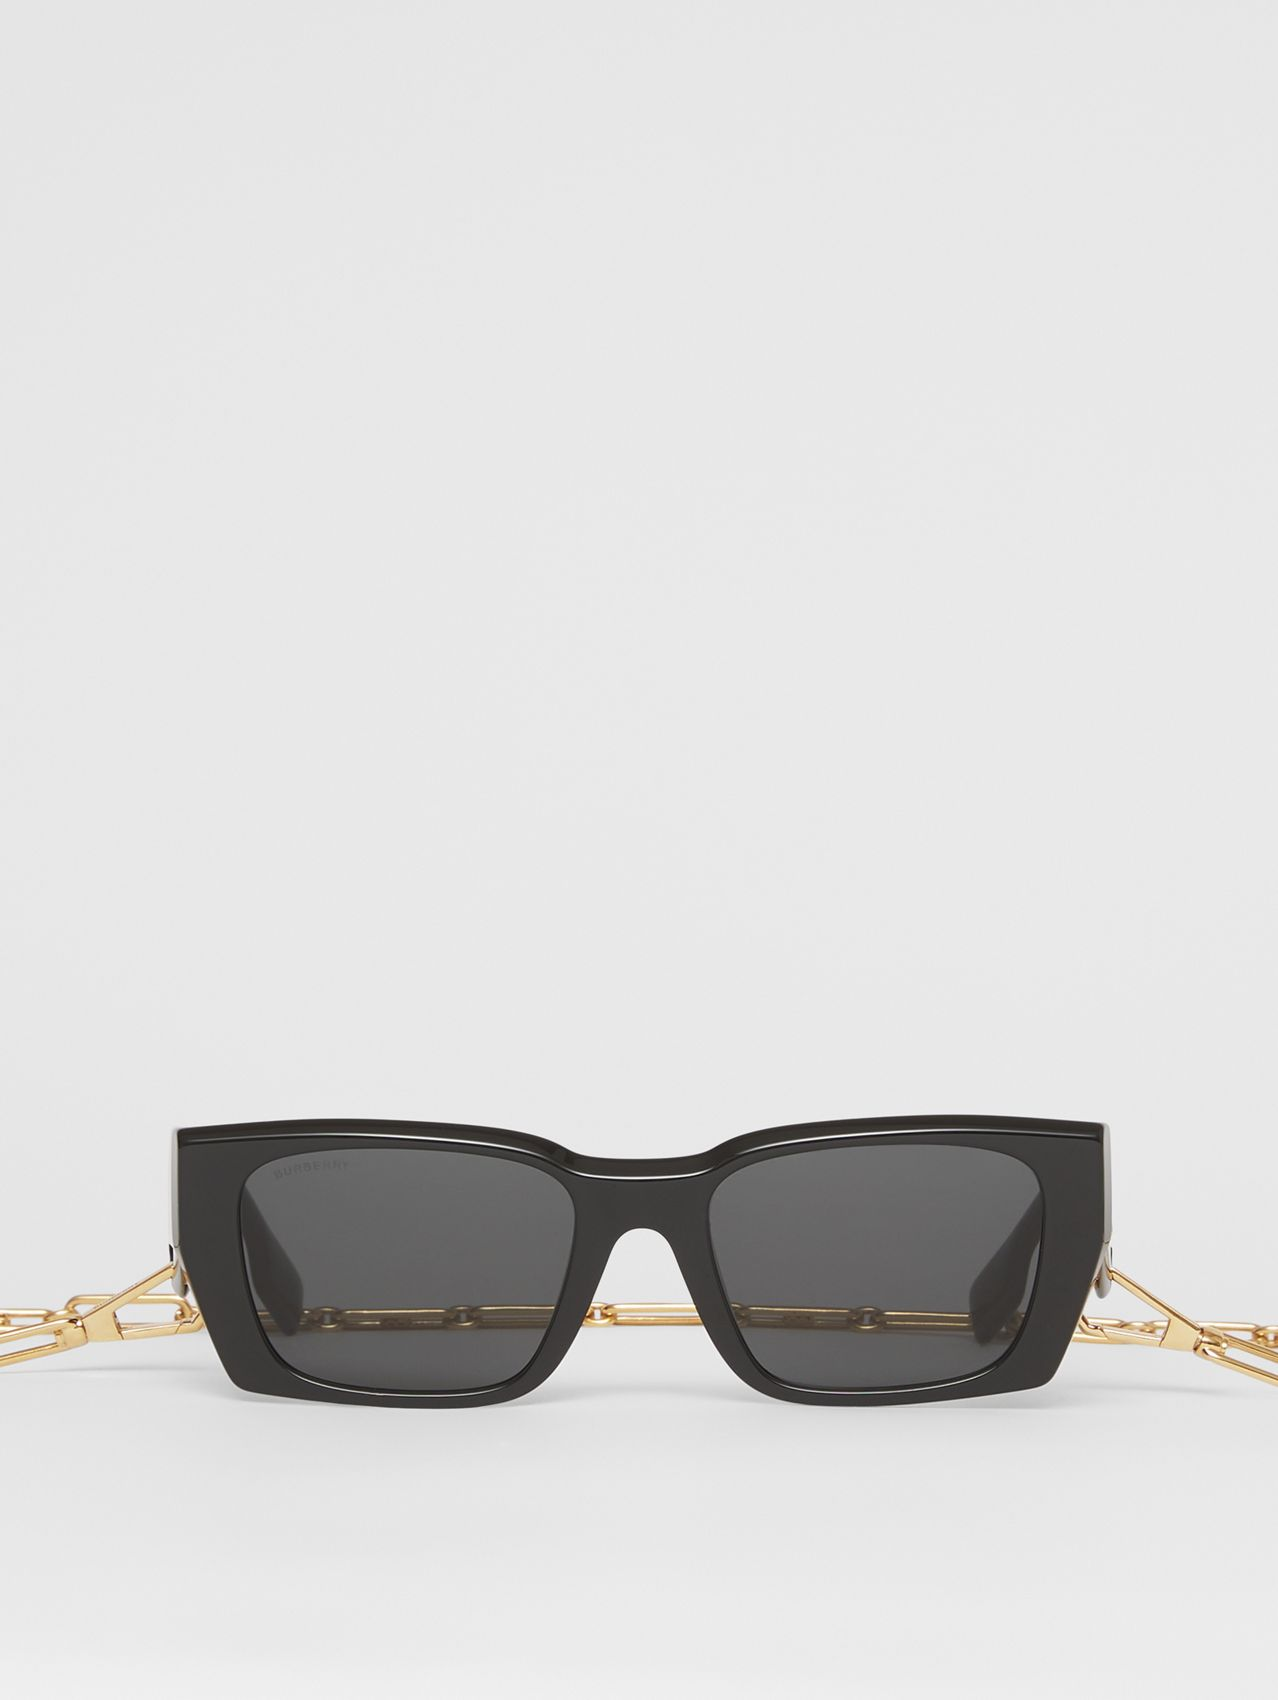 B Motif Rectangular Frame Sunglasses with Necklace in Black